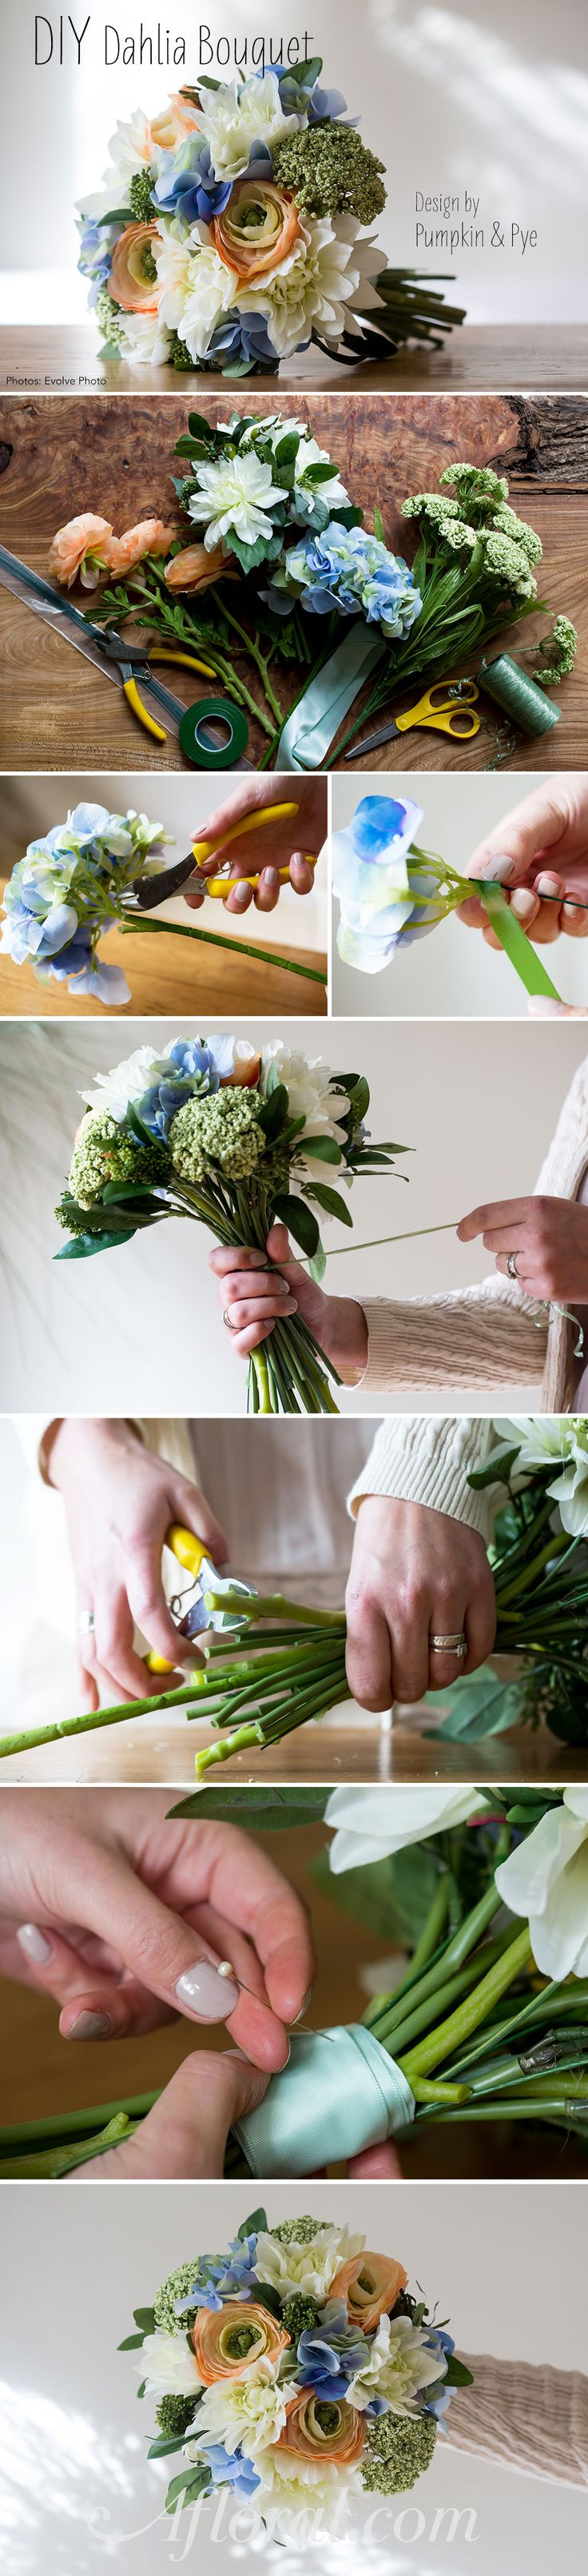 Make this beautiful bouquet with silk flowers for your wedding ...